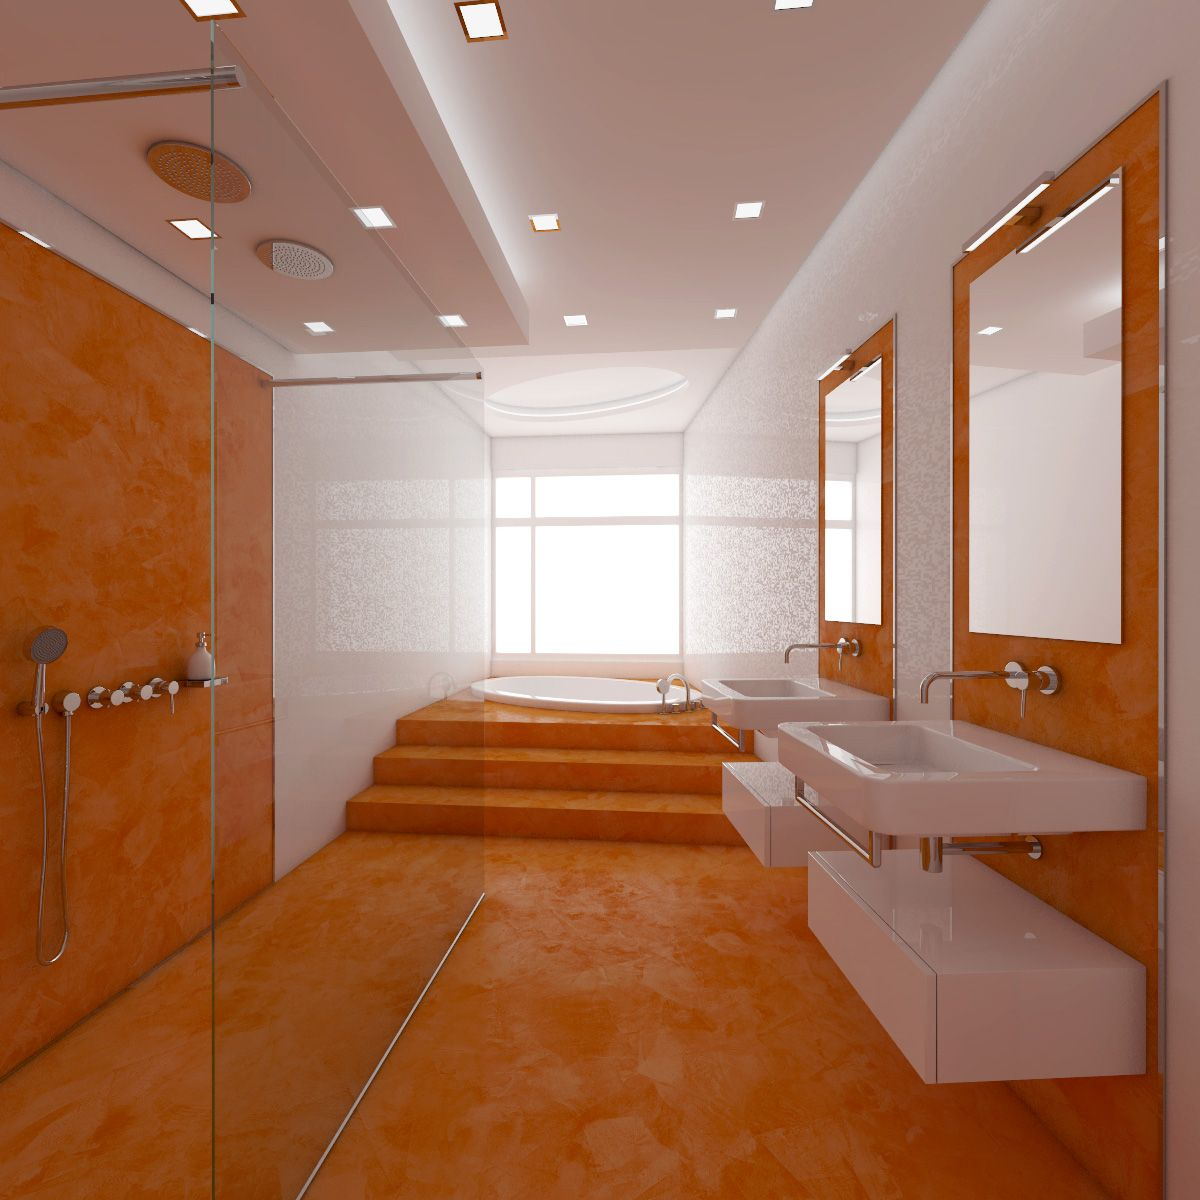 10 Best images about Orange Bathrooms on Pinterest   Tile  Sinks and Bath. 10 Best images about Orange Bathrooms on Pinterest   Tile  Sinks